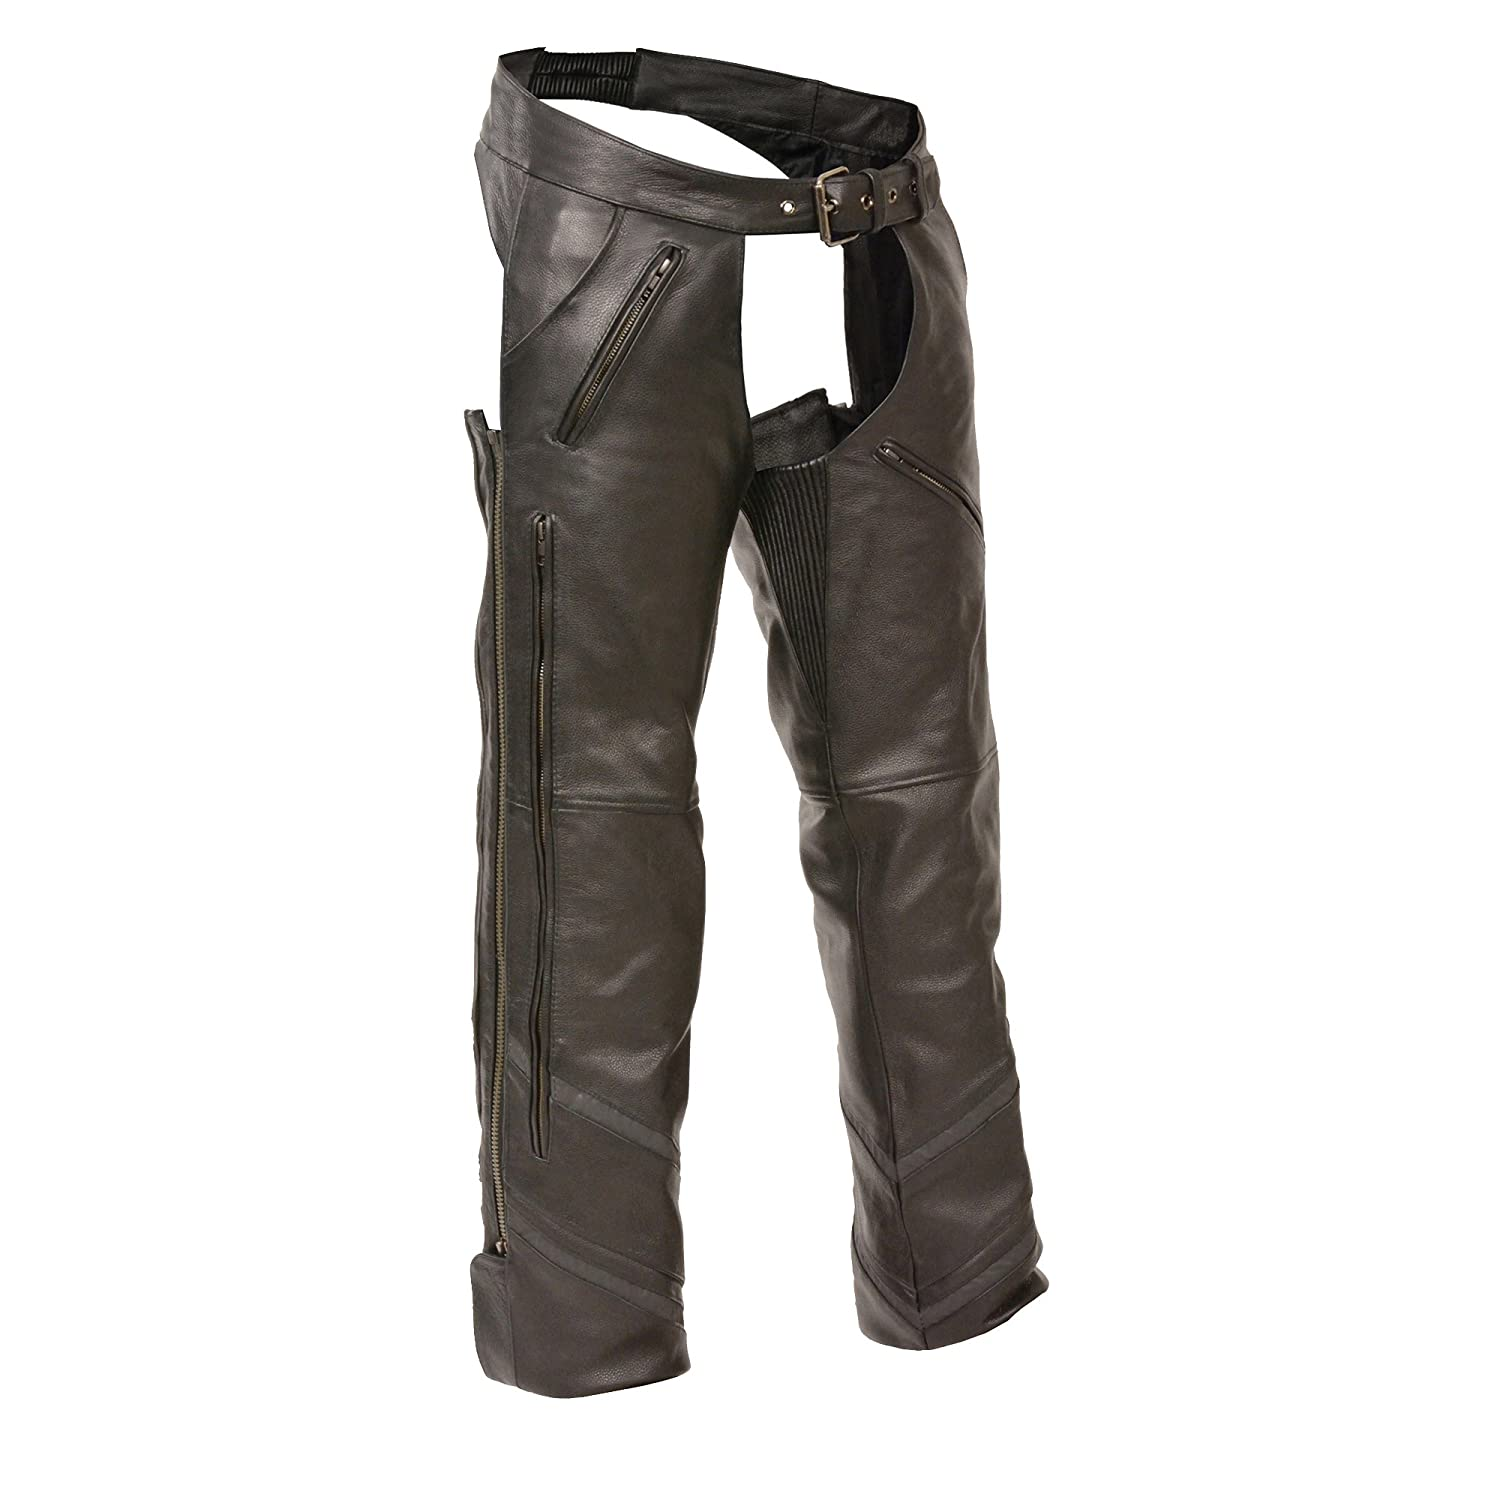 The Milwaukee Mens Motorcycle Reflective Vented Leather Riding CHAP Pants Soft Black Large